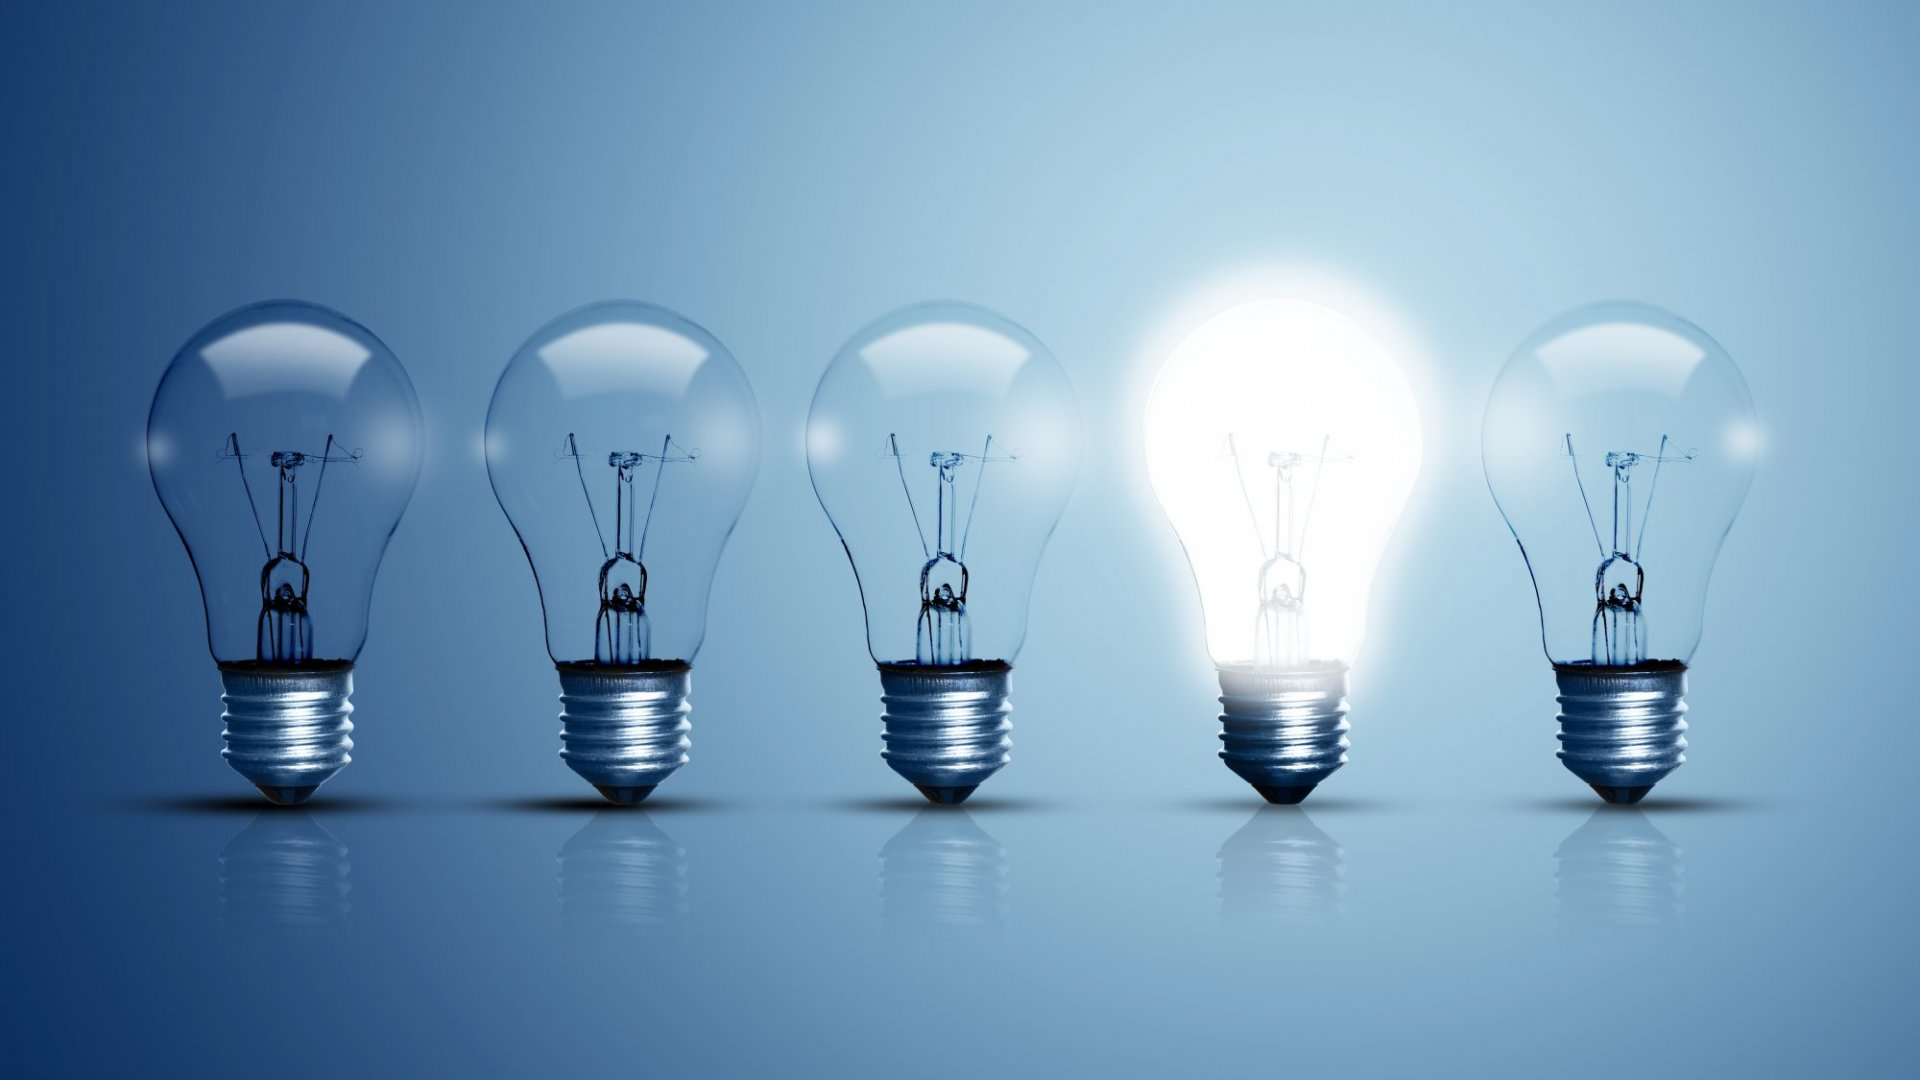 To Develop Ideas, Generate and Evaluate Them at the Same Time